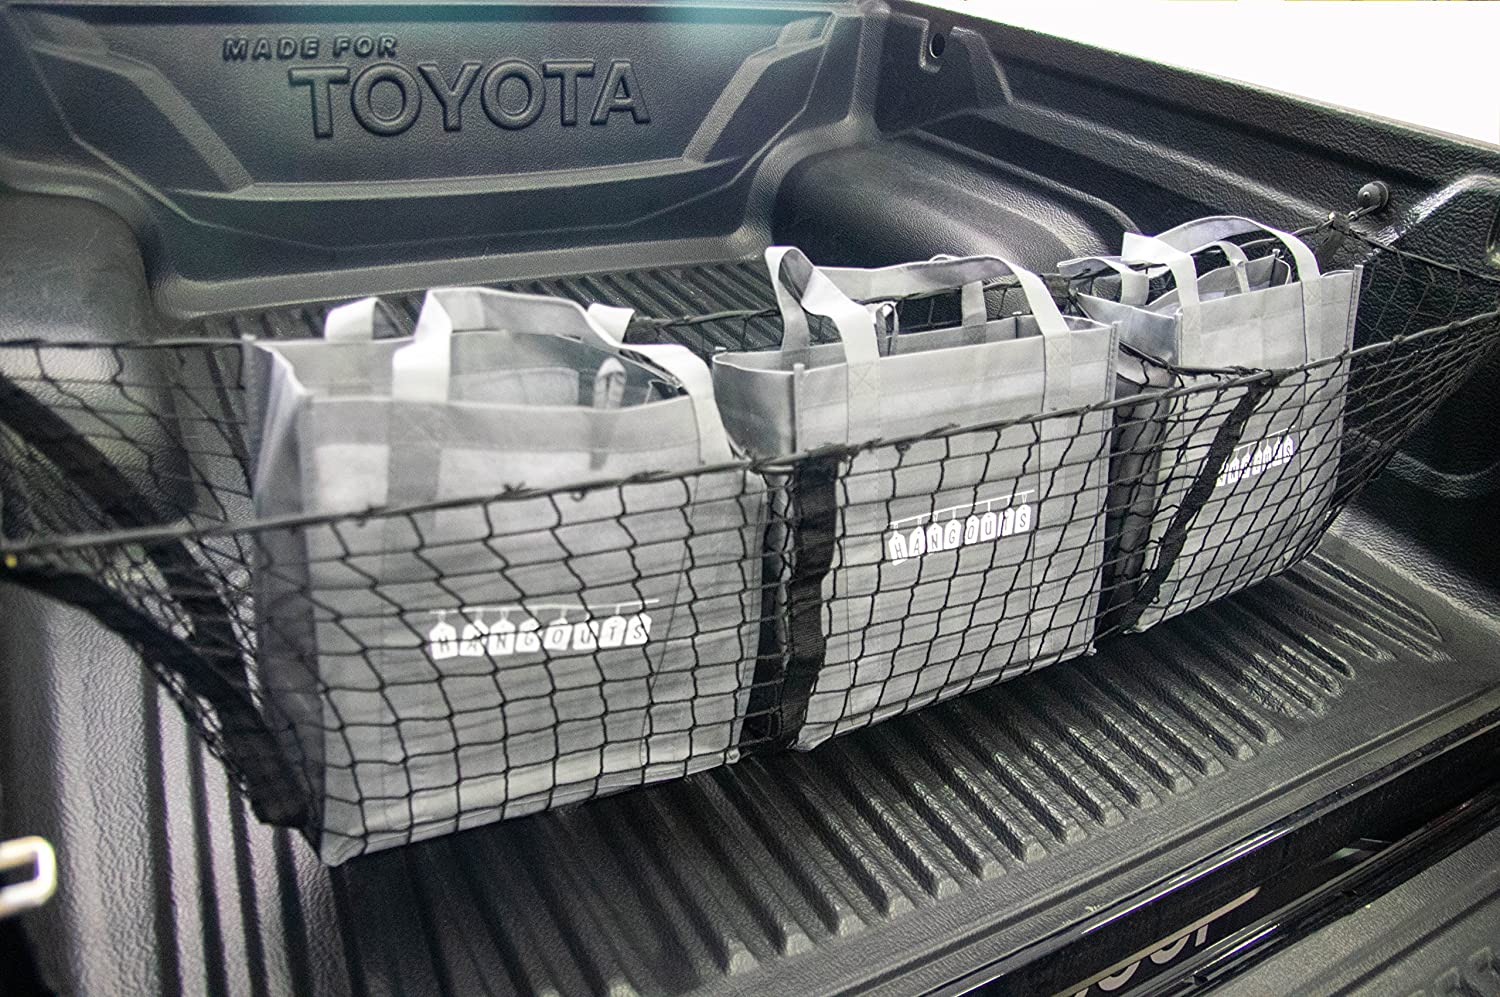 Trunk Boot Cargo Organizer With Spare Bungee Cord Extenders Includes 3 Reusable Grocery Bags Hang Outs H-90 3 Pocket Mesh Storage Net